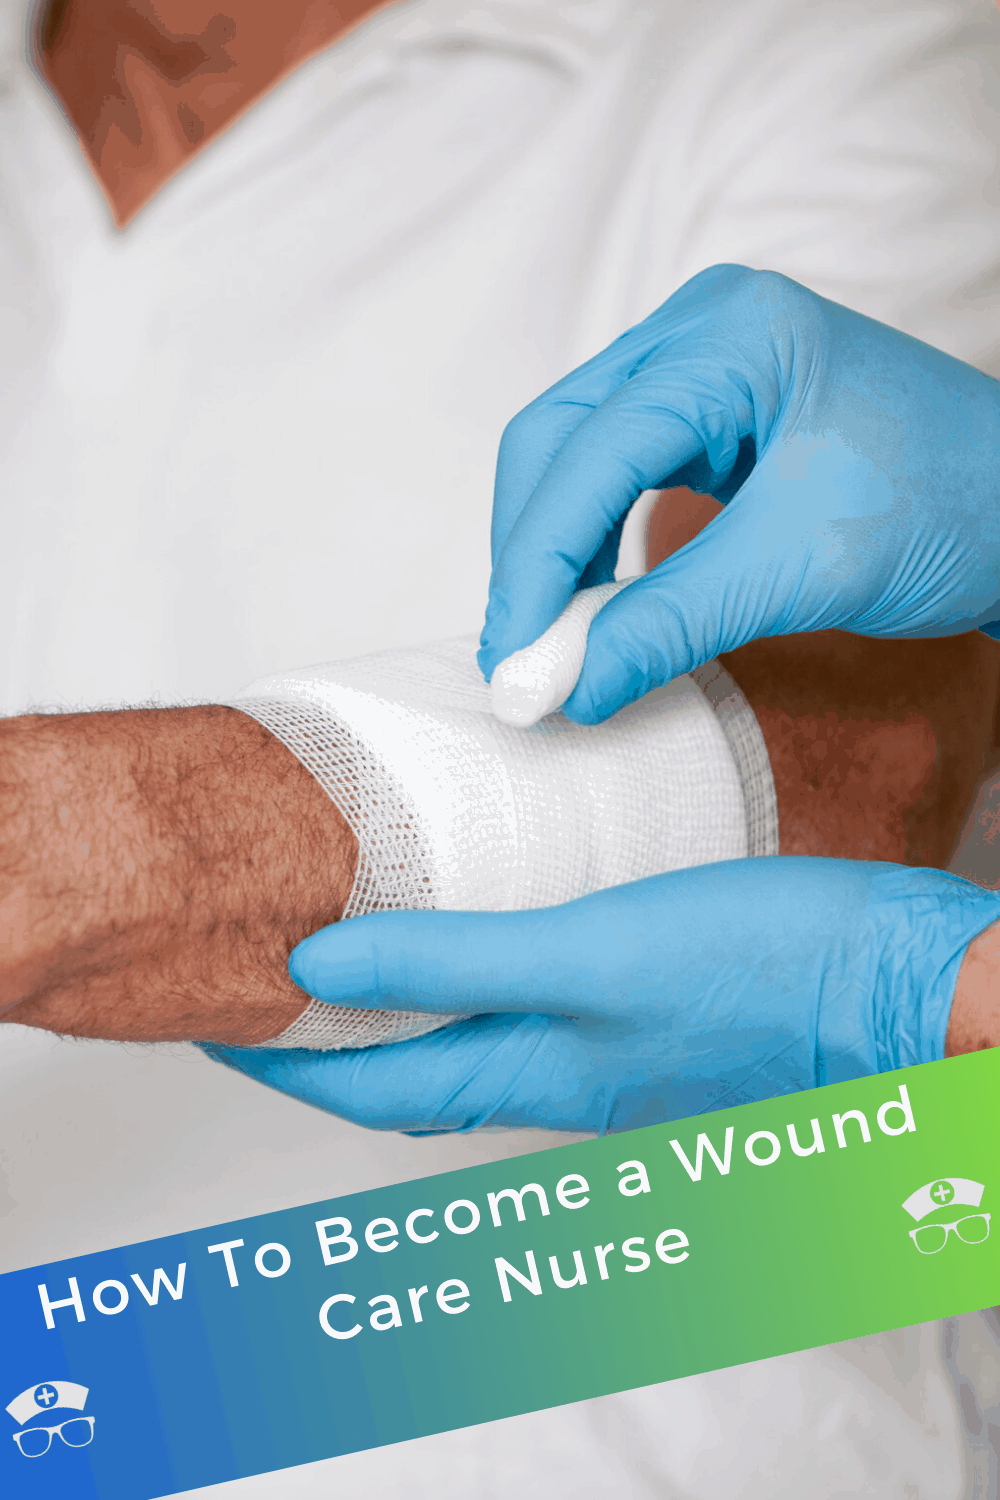 How To Become A Wound Care Nurse. Are you reading to become a wound care nurse? Find out how to get the wound care certification you need to start your career in wound care nursing. #thenerdynurse #nurse #nurses #nursespeciality #woundcare #geriatrics